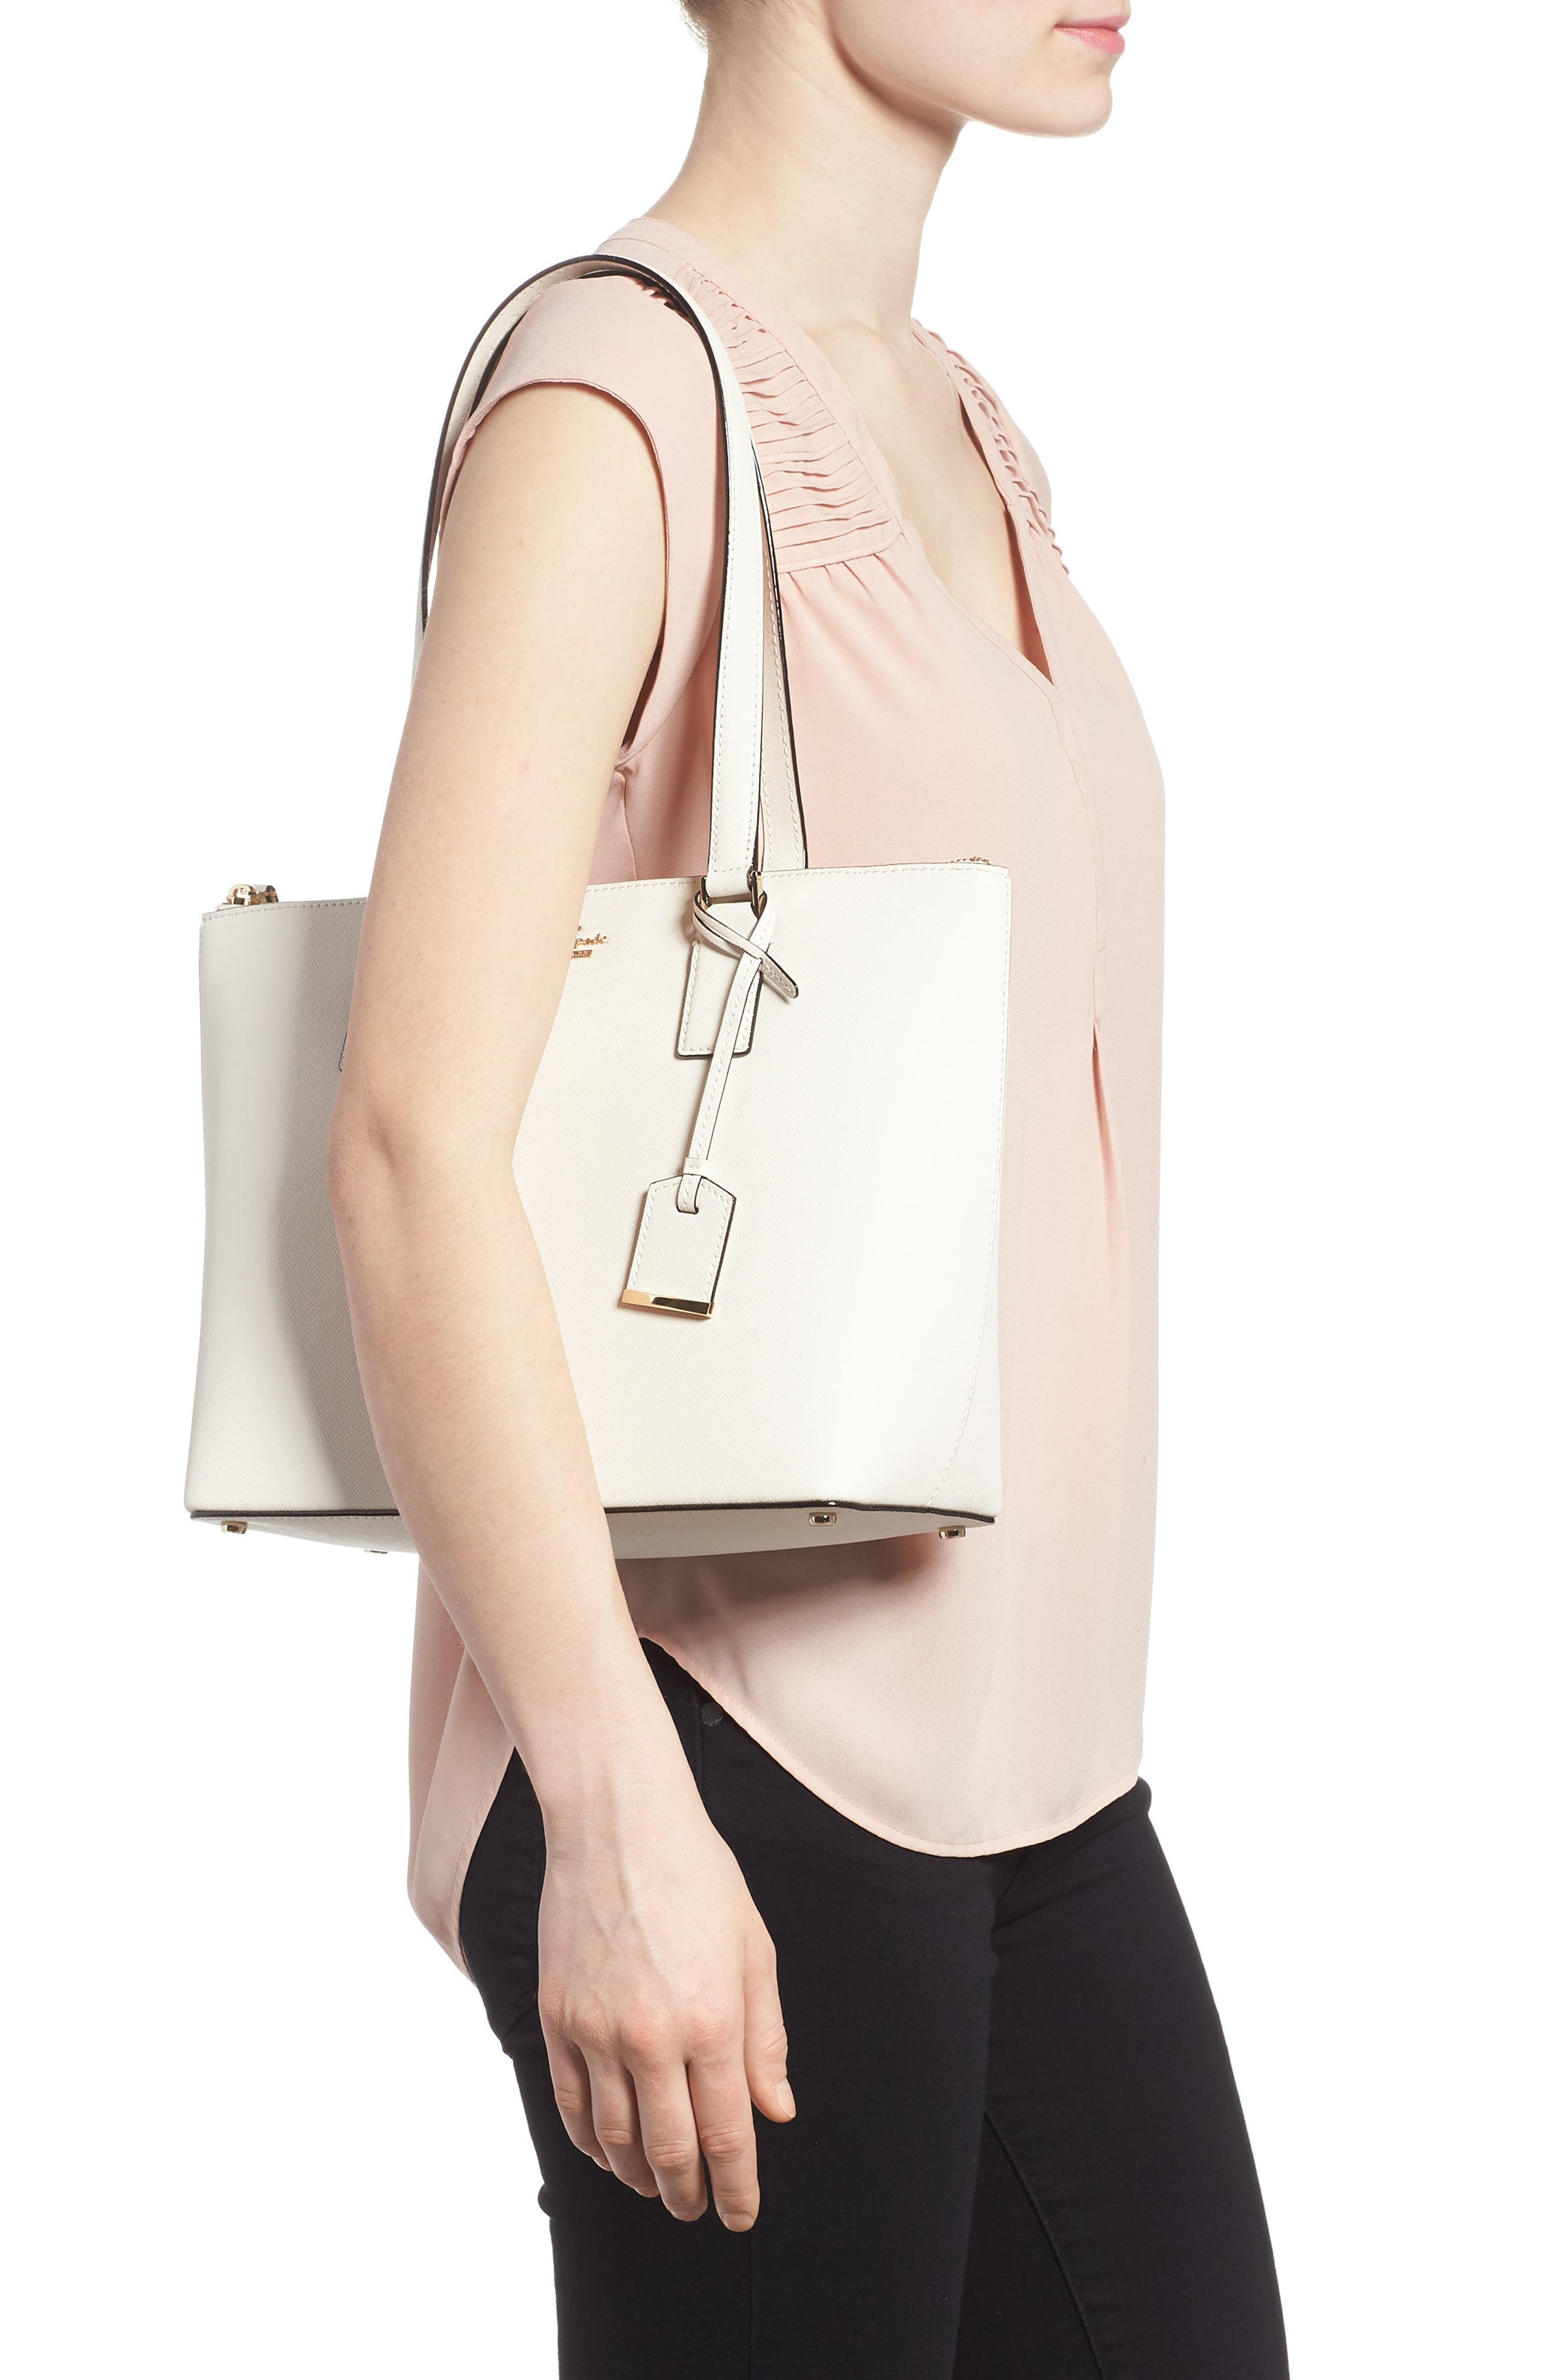 cameron street - small lucie leather tote,                             Alternate thumbnail 2, color,                             Cement